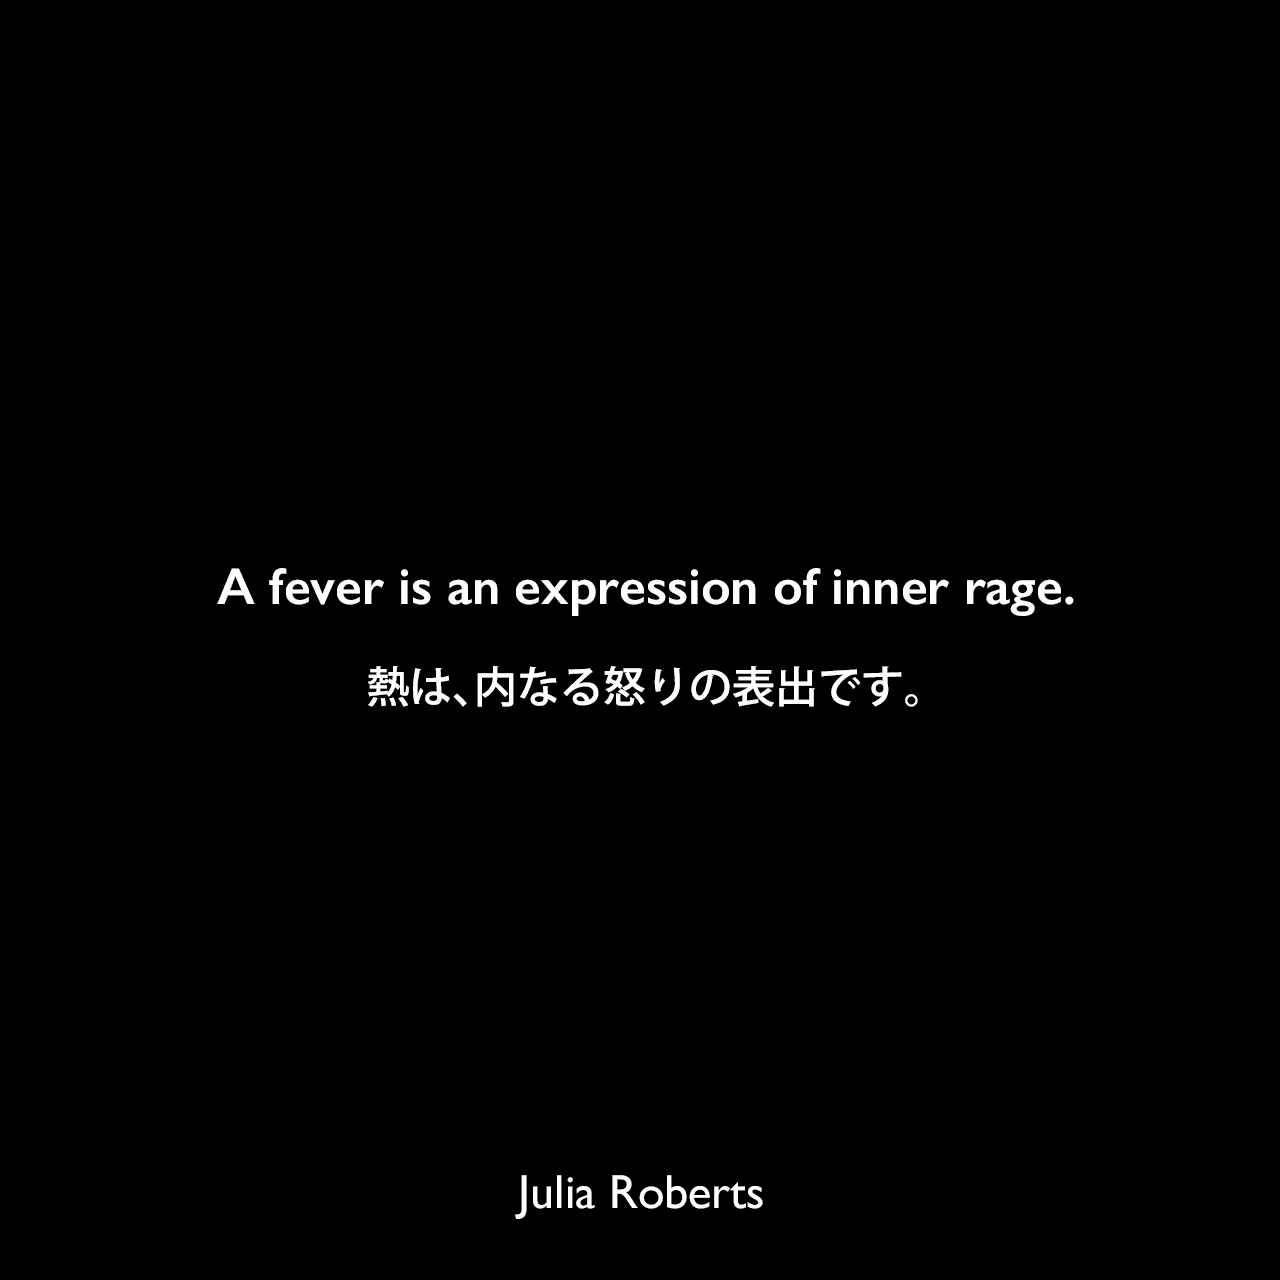 A fever is an expression of inner rage.熱は、内なる怒りの表出です。Julia Roberts